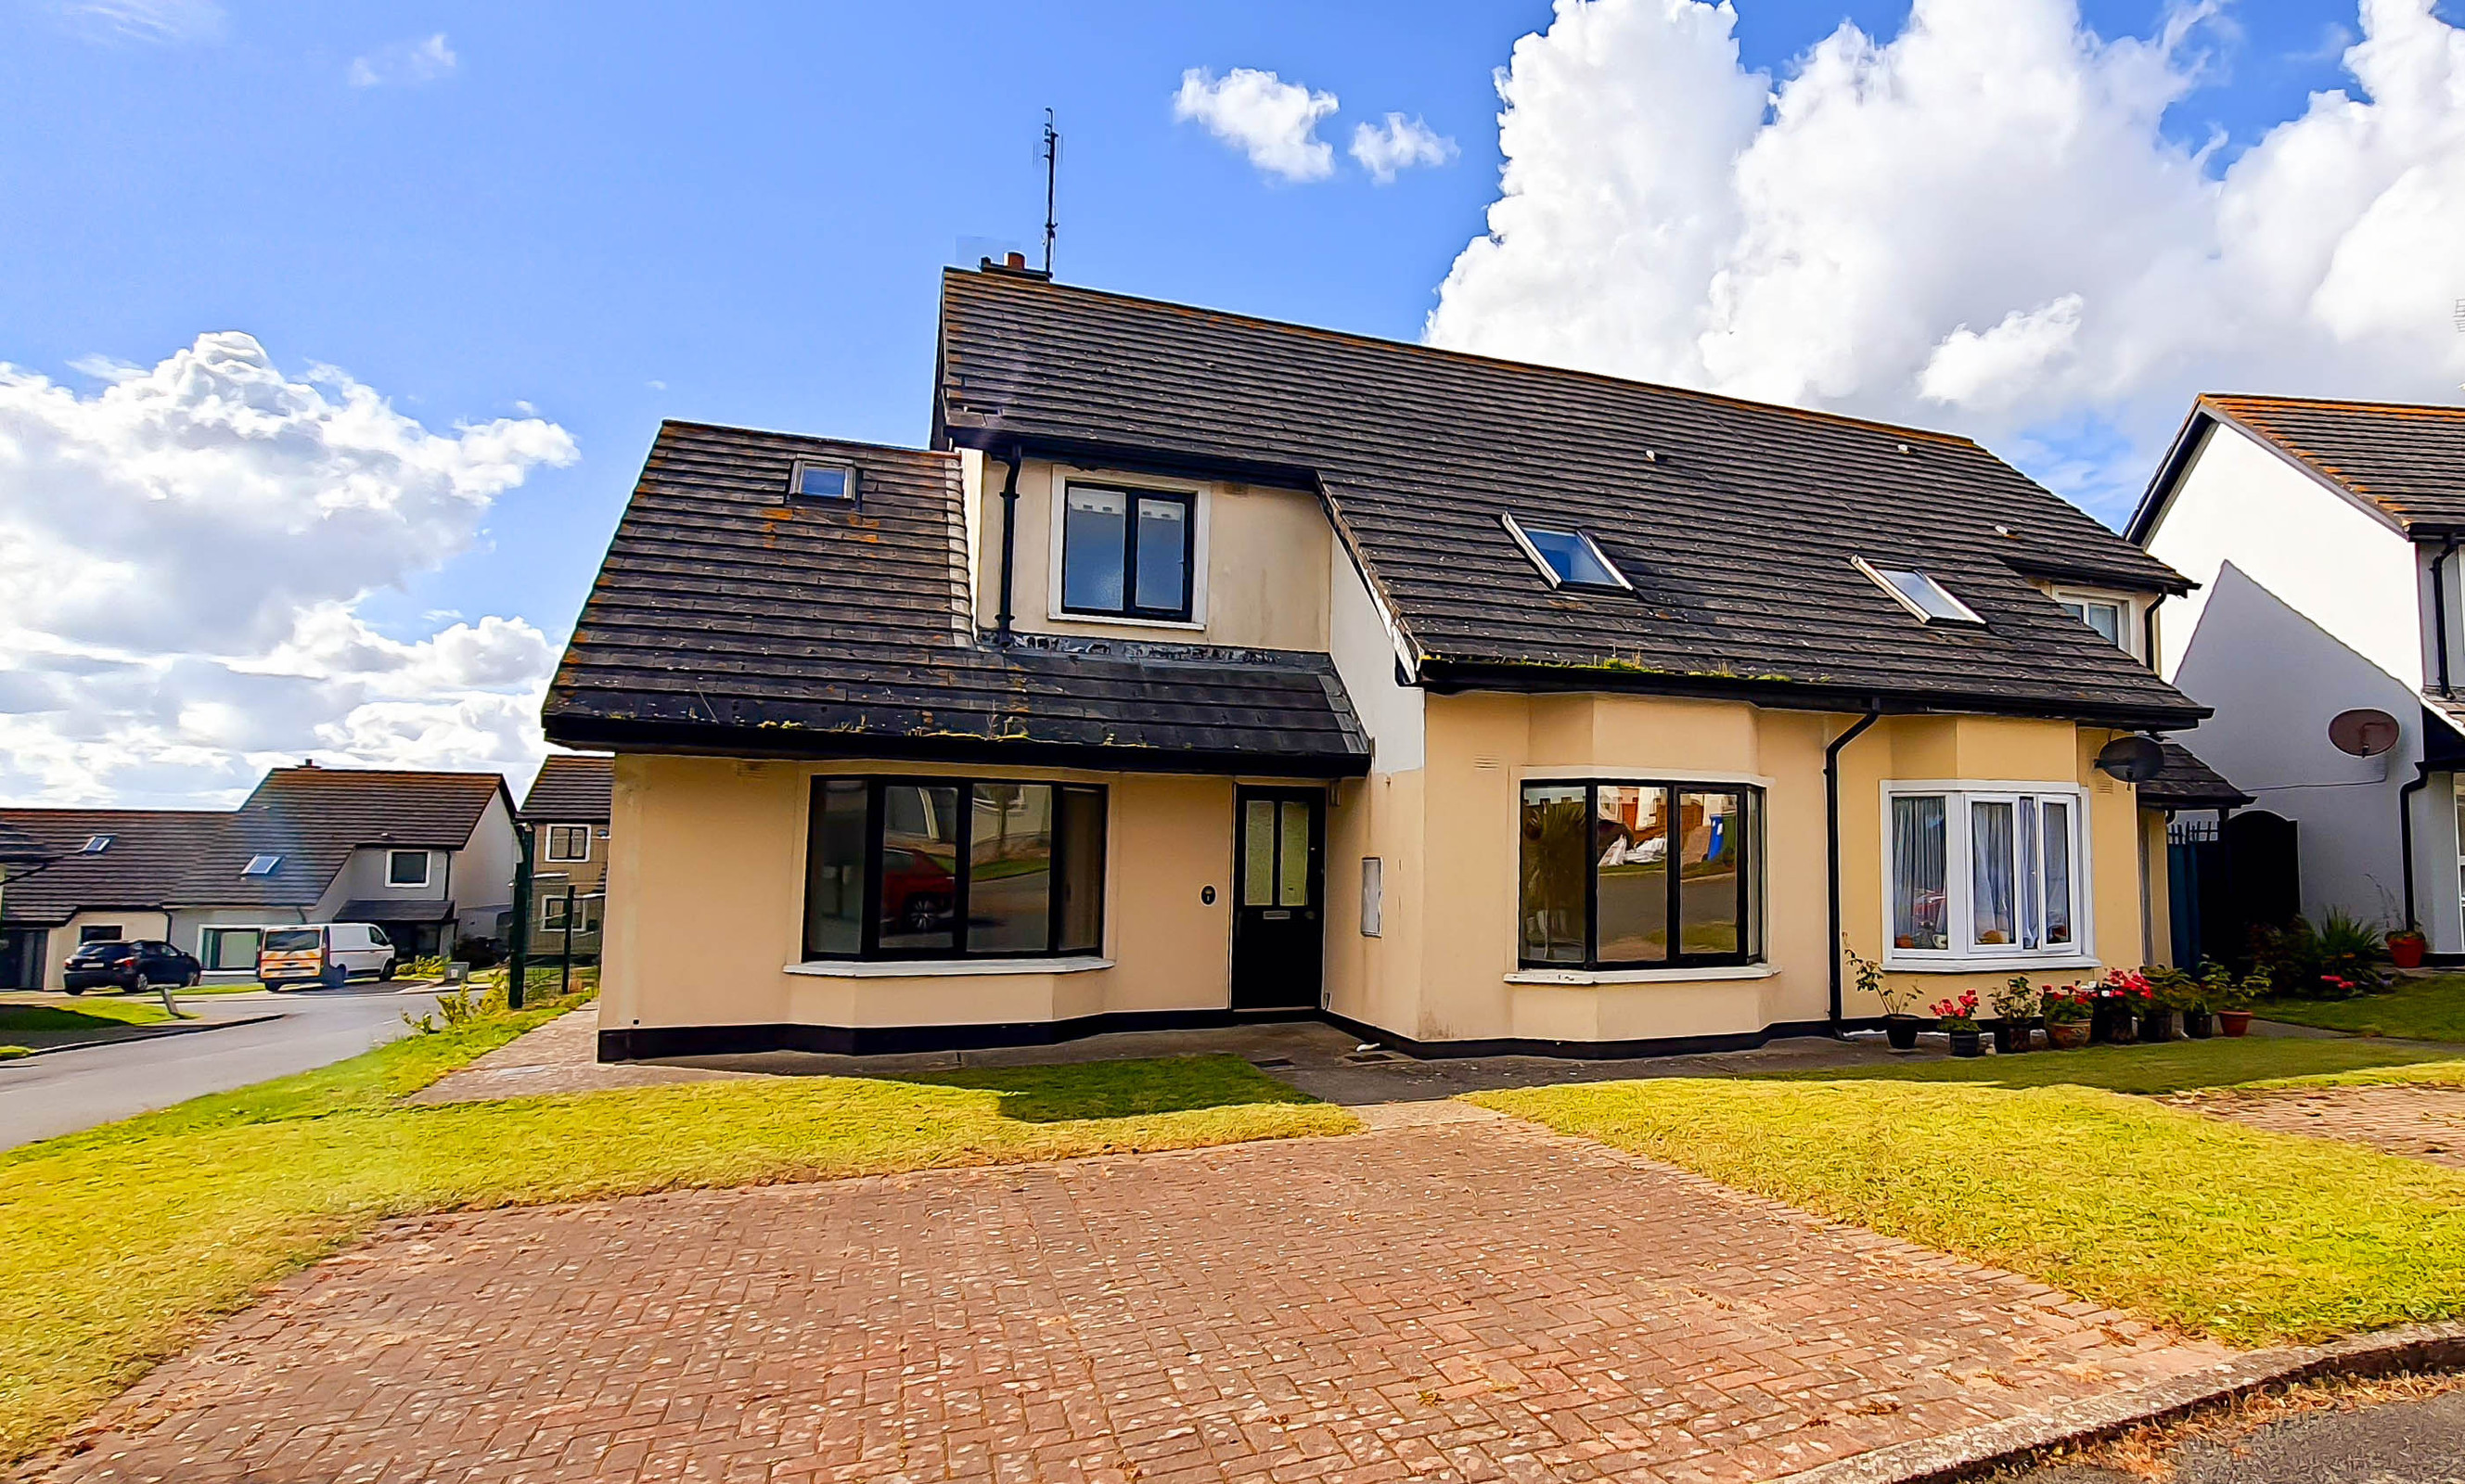 1 Beachside Rise, Riverchapel, Gorey, Co. Wexford